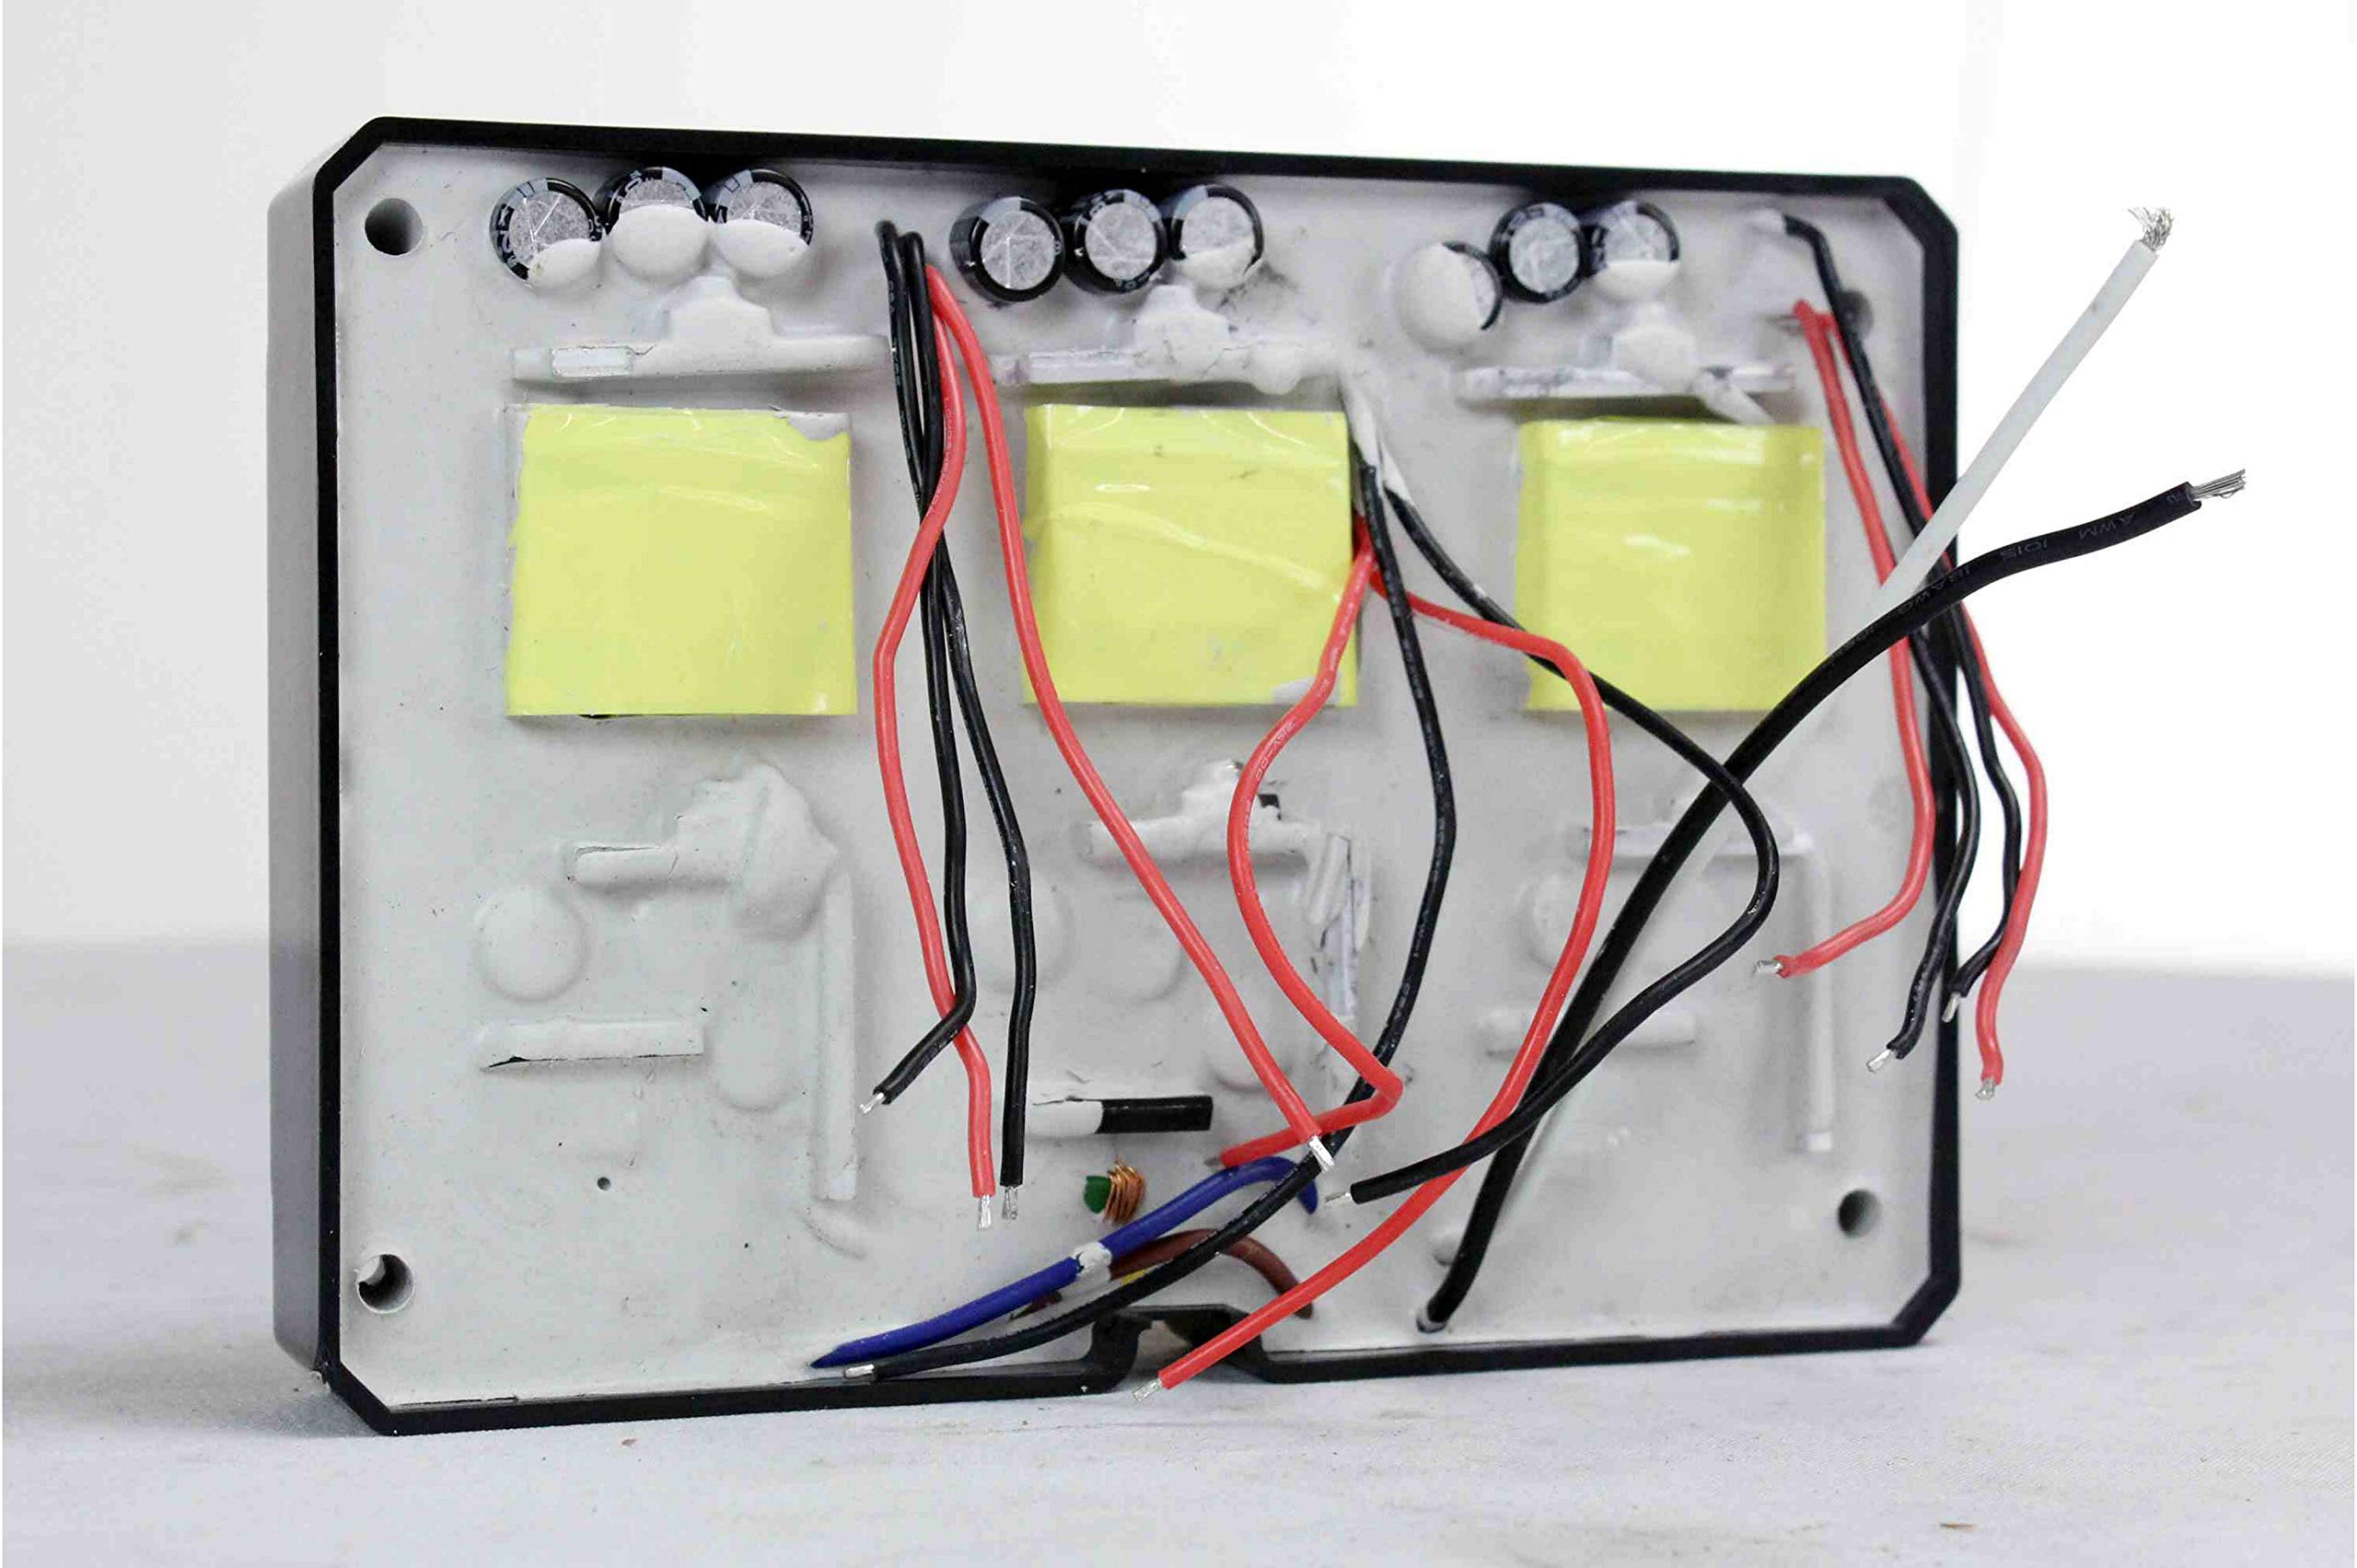 Replacement Board/Driver Package for EPL-HB-150LED-RT Series Explosion Proof LED Light Fixtures by Larson Electronics